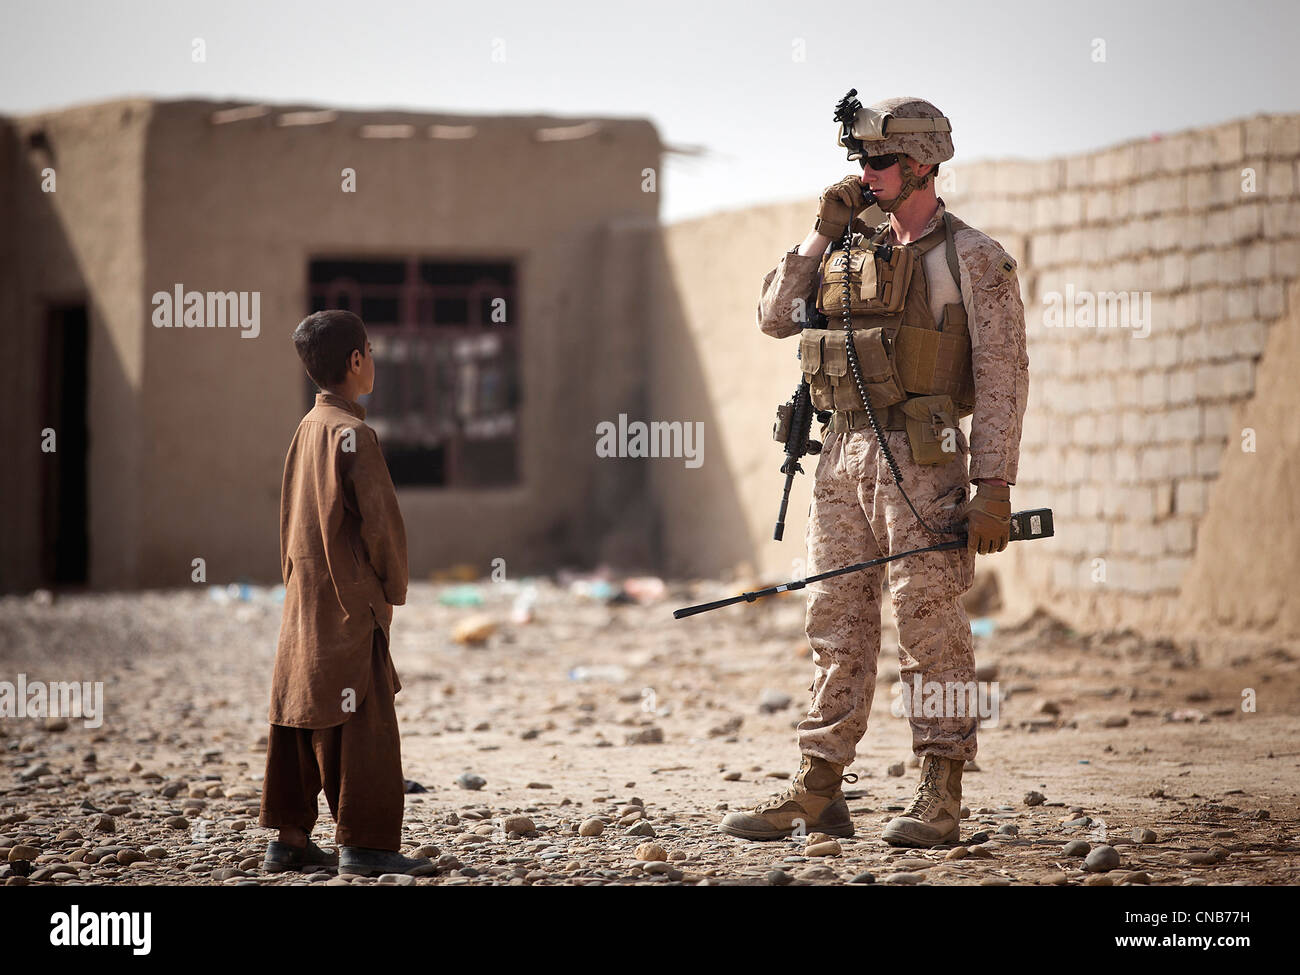 A US Marine relays a message on his radio as an Afghan boy looks on during a compound search April 1, 2012 in Garmsir - Stock Image